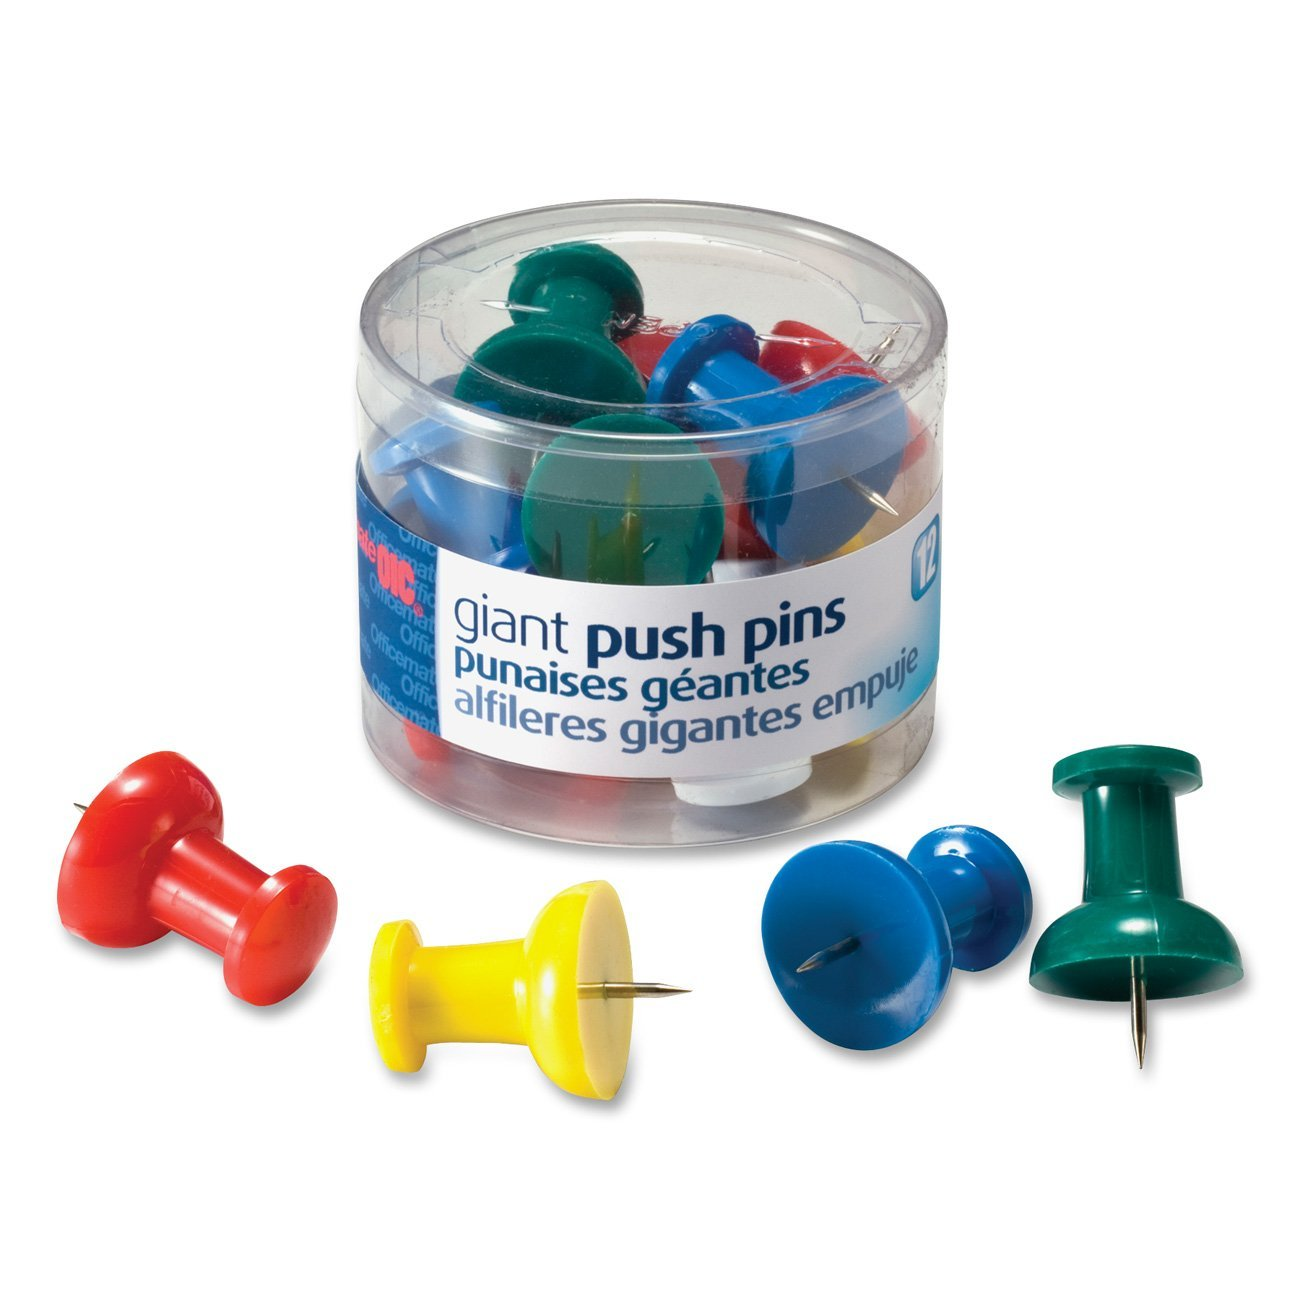 giant push pins 1 5 inch assorted colors tub of 12 92902